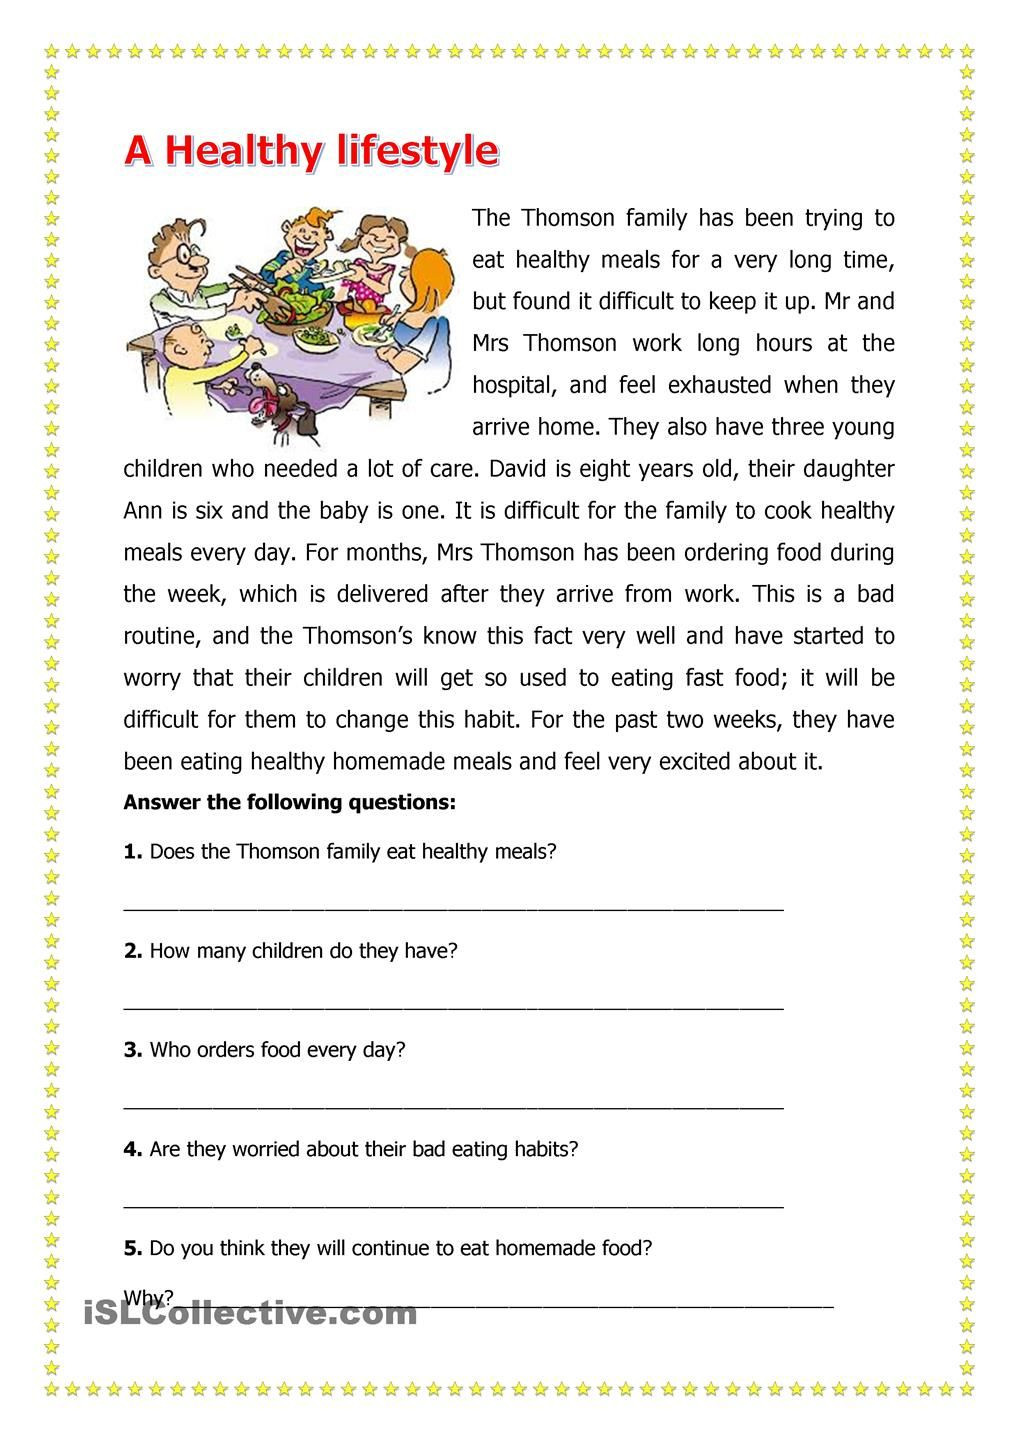 Middle School Health Worksheets Pdf A Healthy Lifestyle